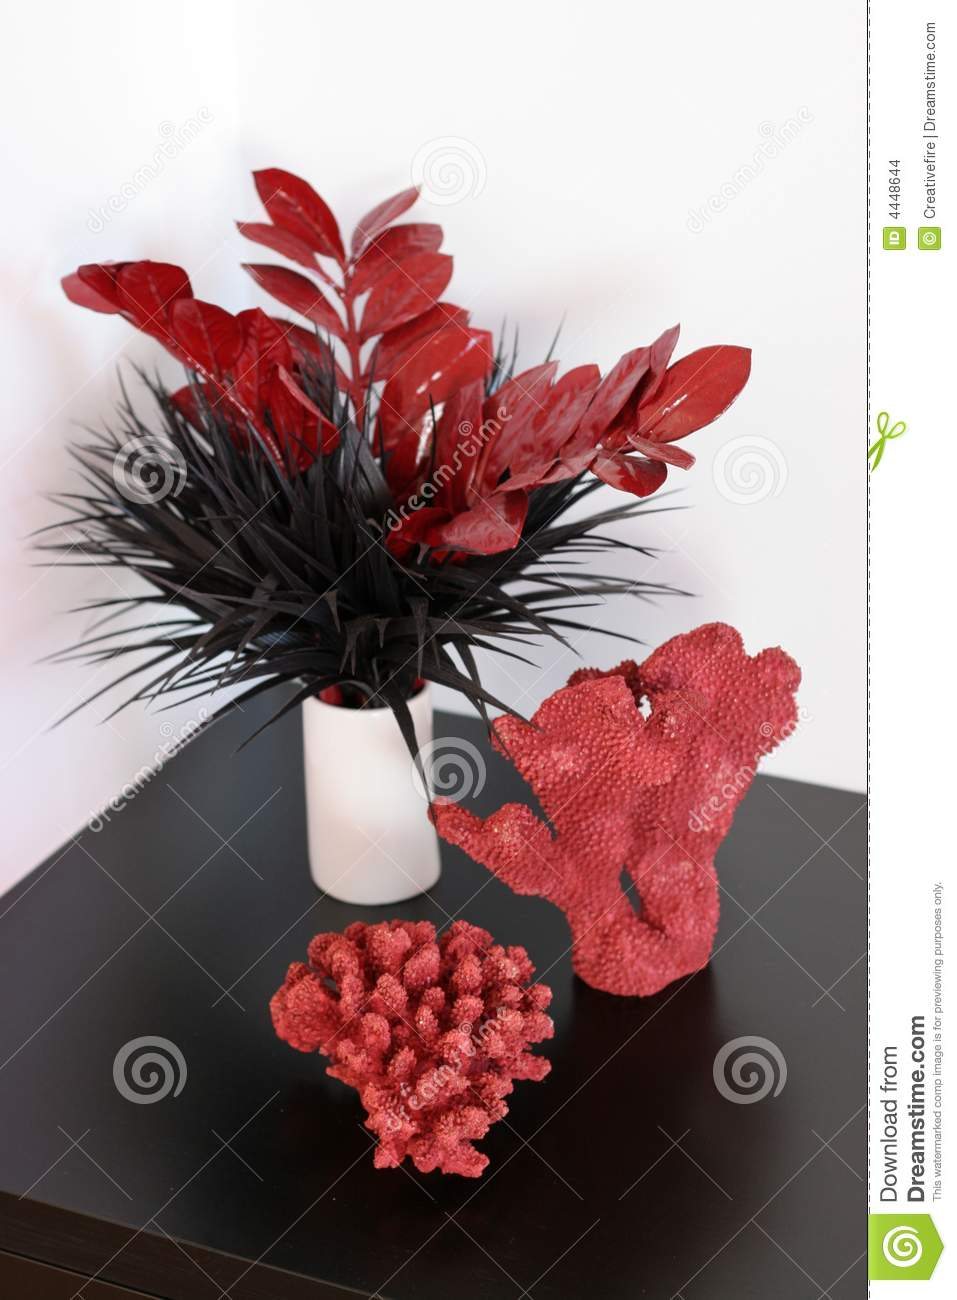 Red Coral Decor Stock Images  Image 4448644. Living Room Ceiling Light. Hotels With Jacuzzi In Room In Ri. Silver Dining Room Chairs. Rooms To Go Bedroom Suites. Cute Teen Room Decor. Hanging Paper Decorations. Decorating A Sideboard. Decorating Walls